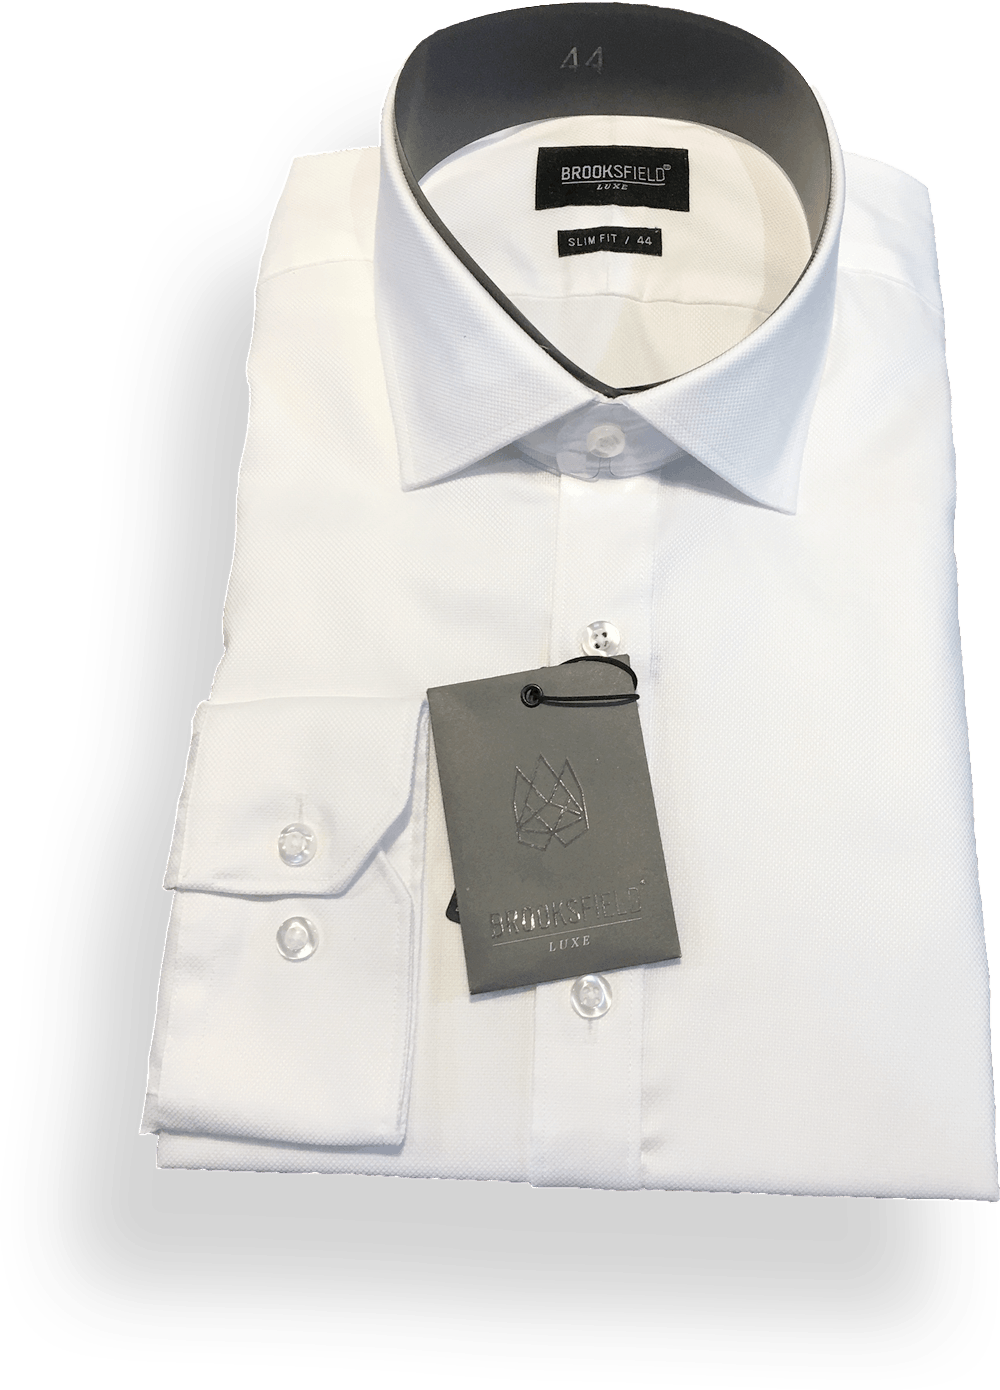 Brooksfield Luxe Business Shirt BFC882-Cream - Harry's for Menswear